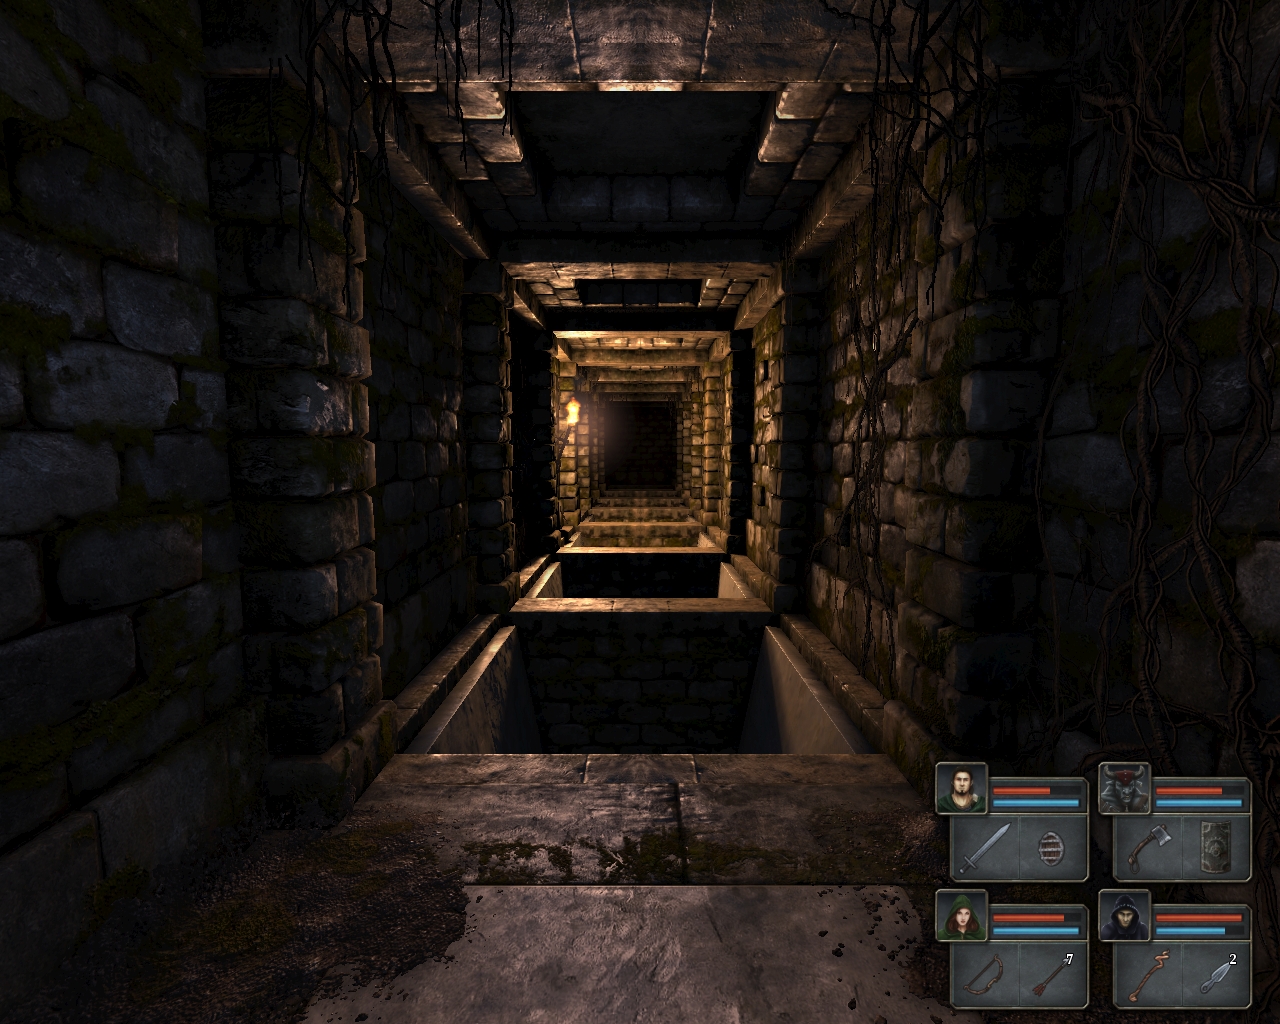 Legend of Grimrock Windows Put away your torch and witness some moody corridors